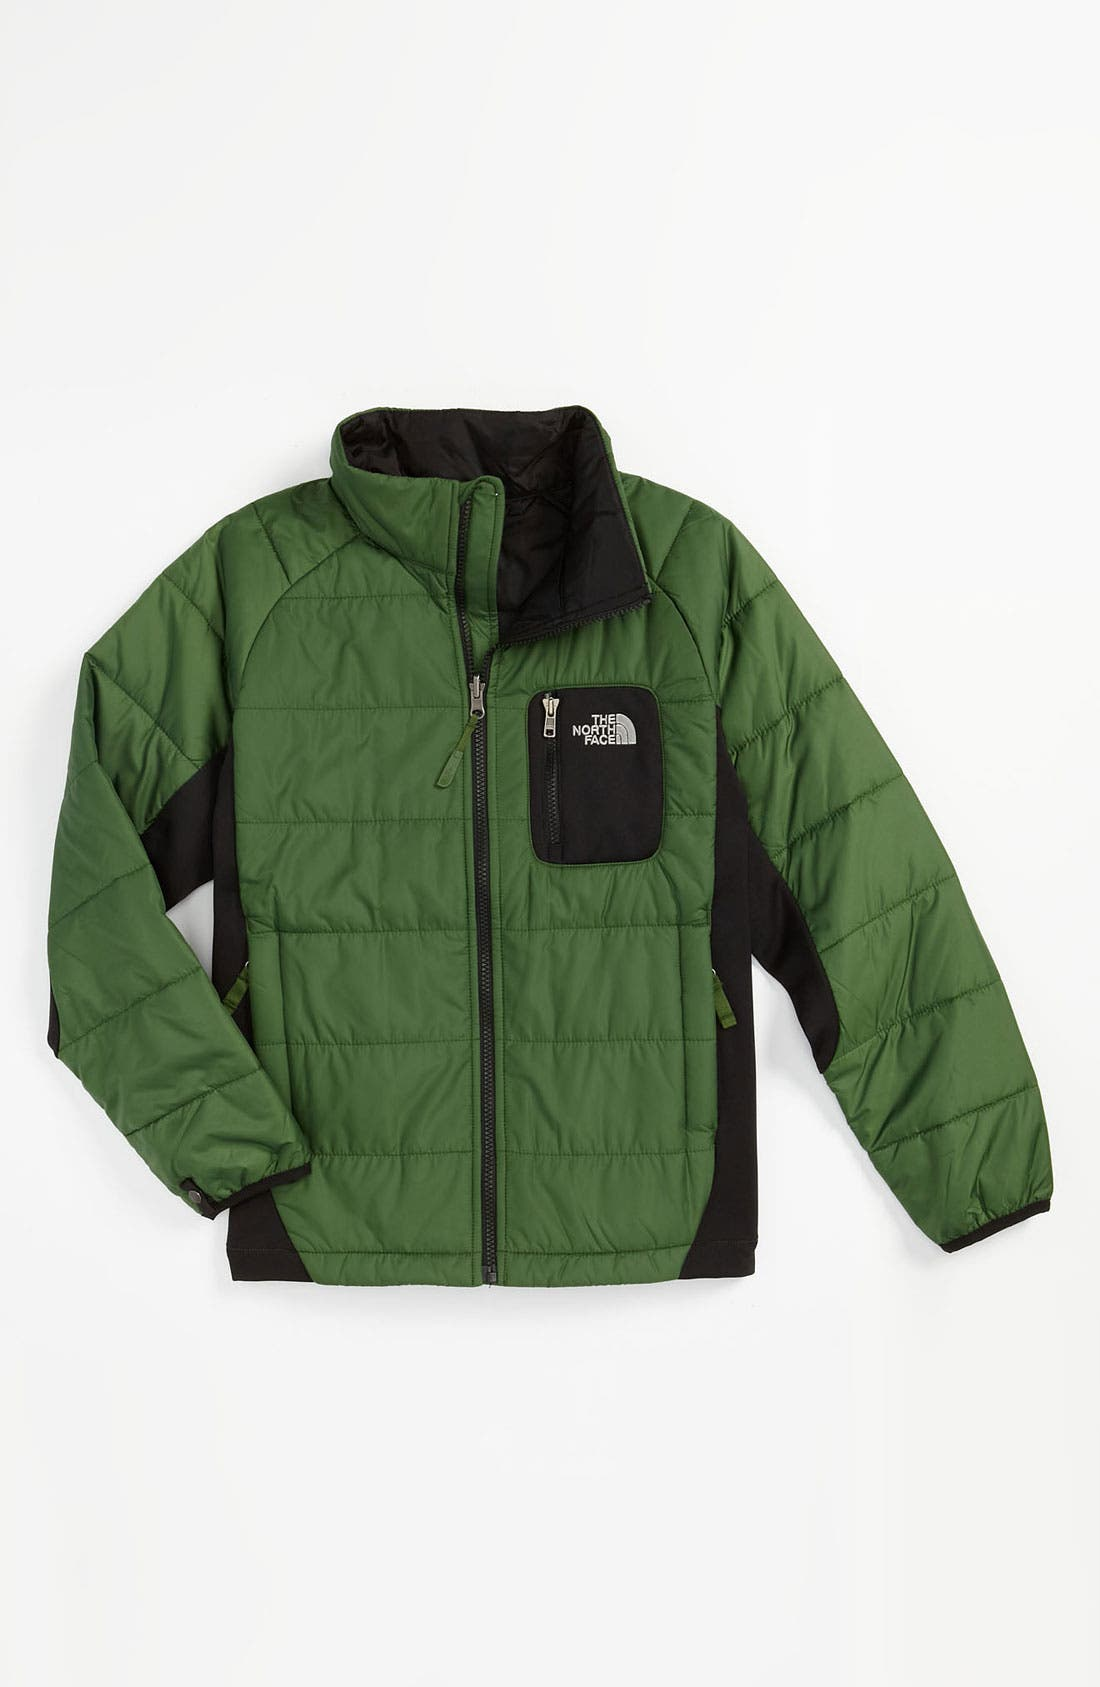 Alternate Image 1 Selected - The North Face 'Sibrian' Jacket (Big Boys)